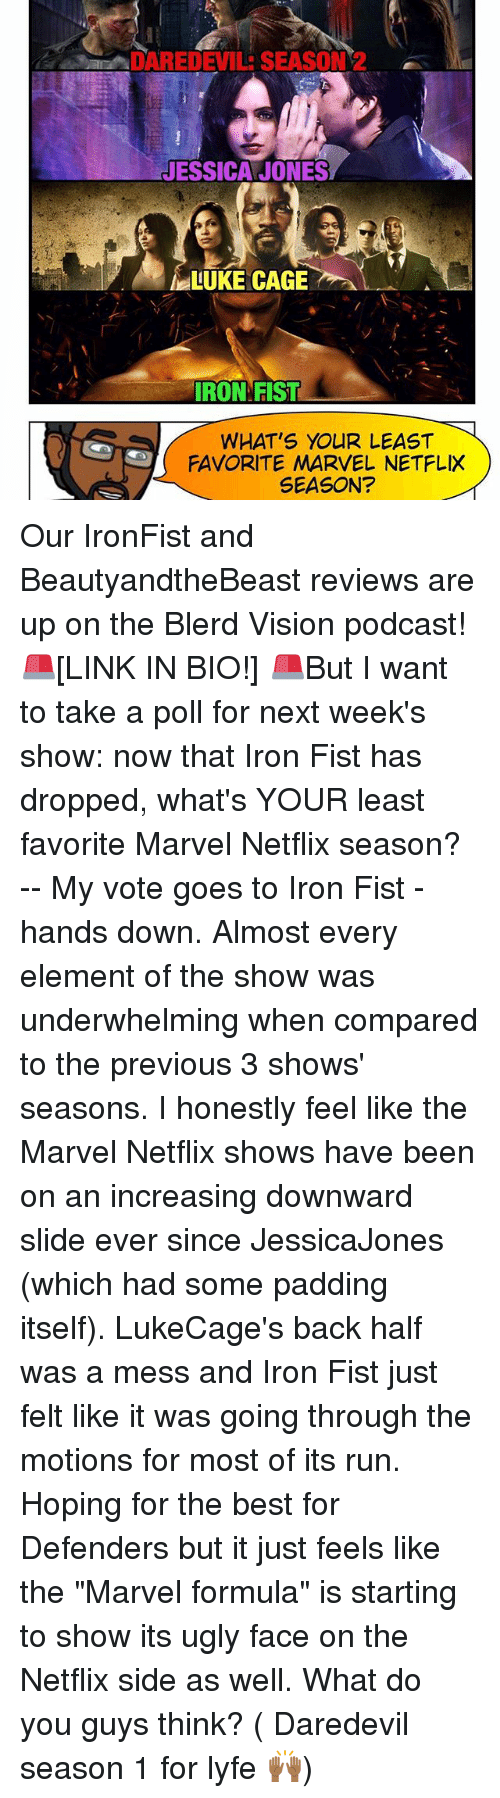 """luke cage: ADAREDEVILE SEASON 2  JESSICA JONES  LUKE CAGE  IRON FIST  WHAT'S YOUR LEAST  FAVORITE MARVEL NETFLIX  SEASON? Our IronFist and BeautyandtheBeast reviews are up on the Blerd Vision podcast! 🚨[LINK IN BIO!] 🚨But I want to take a poll for next week's show: now that Iron Fist has dropped, what's YOUR least favorite Marvel Netflix season? -- My vote goes to Iron Fist - hands down. Almost every element of the show was underwhelming when compared to the previous 3 shows' seasons. I honestly feel like the Marvel Netflix shows have been on an increasing downward slide ever since JessicaJones (which had some padding itself). LukeCage's back half was a mess and Iron Fist just felt like it was going through the motions for most of its run. Hoping for the best for Defenders but it just feels like the """"Marvel formula"""" is starting to show its ugly face on the Netflix side as well. What do you guys think? ( Daredevil season 1 for lyfe 🙌🏾)"""